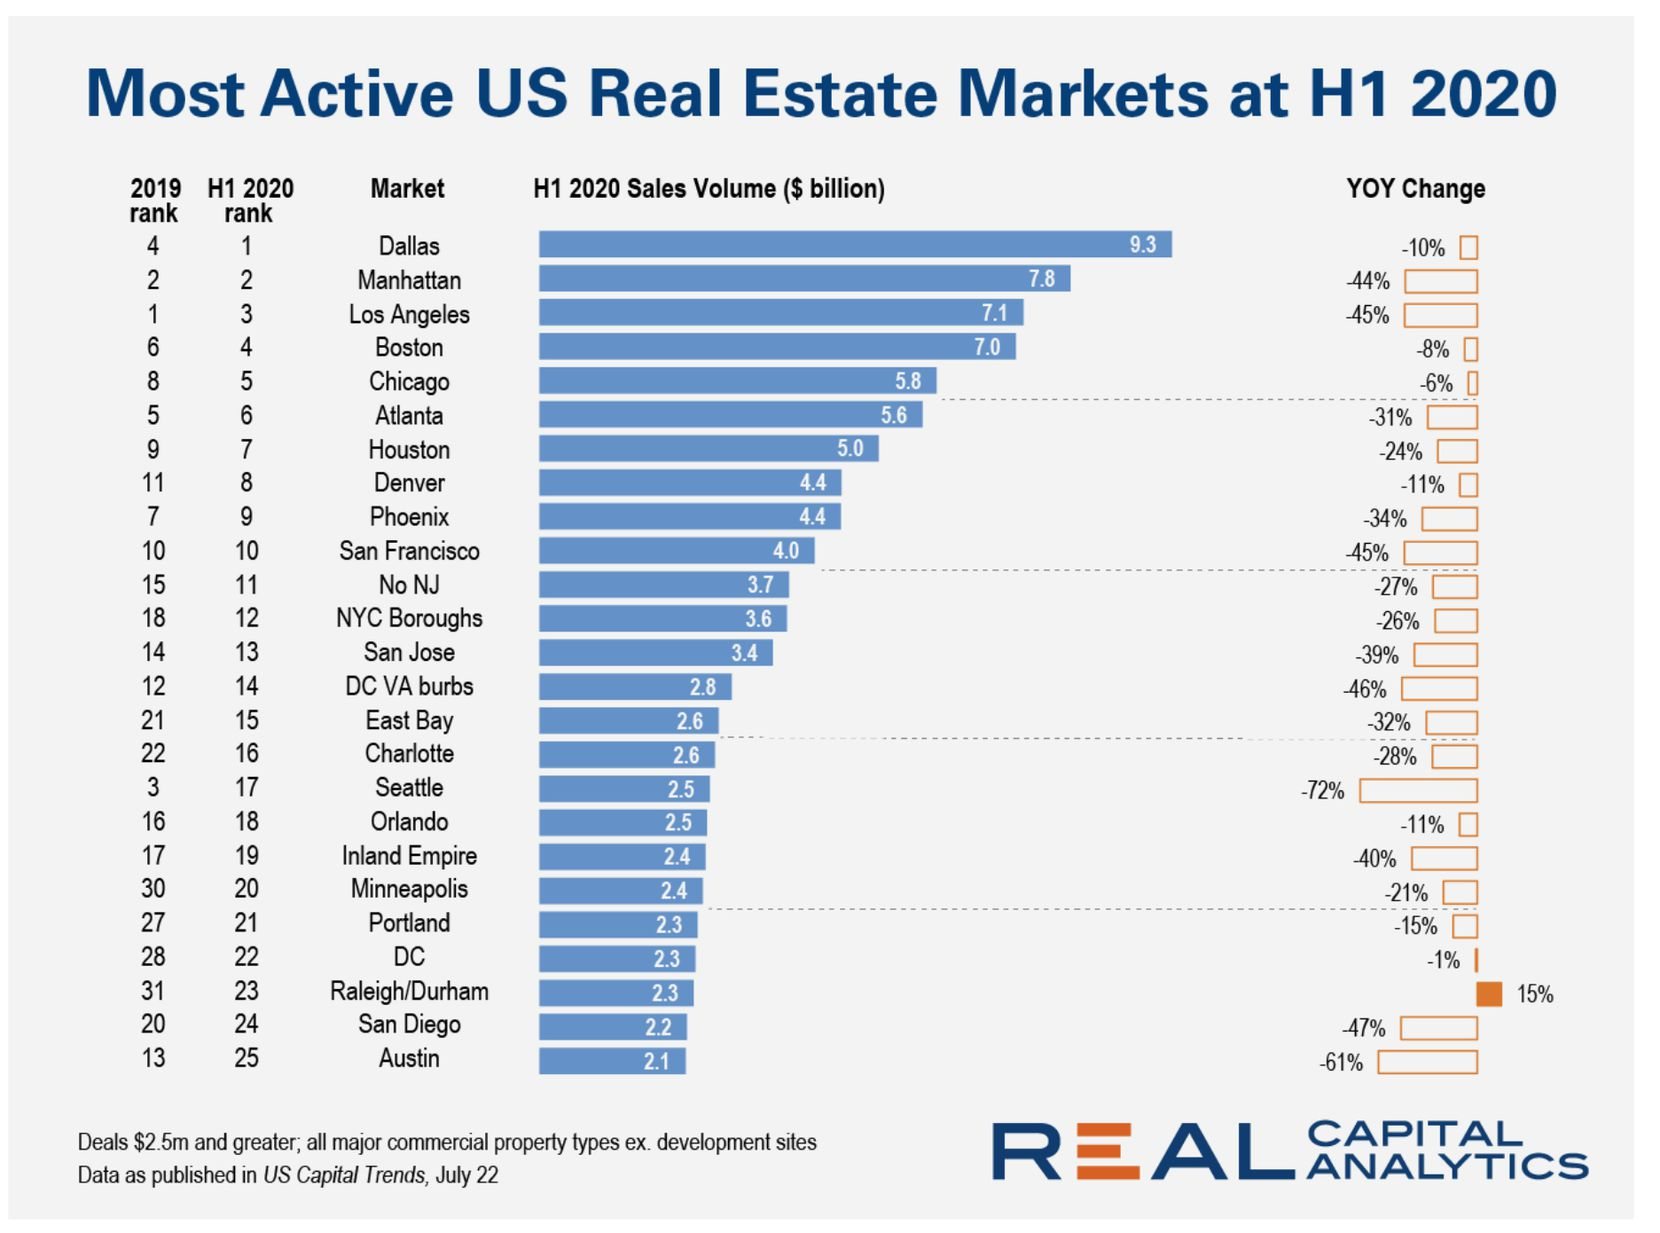 Dallas was the leading U.S. real estate market for the first time.